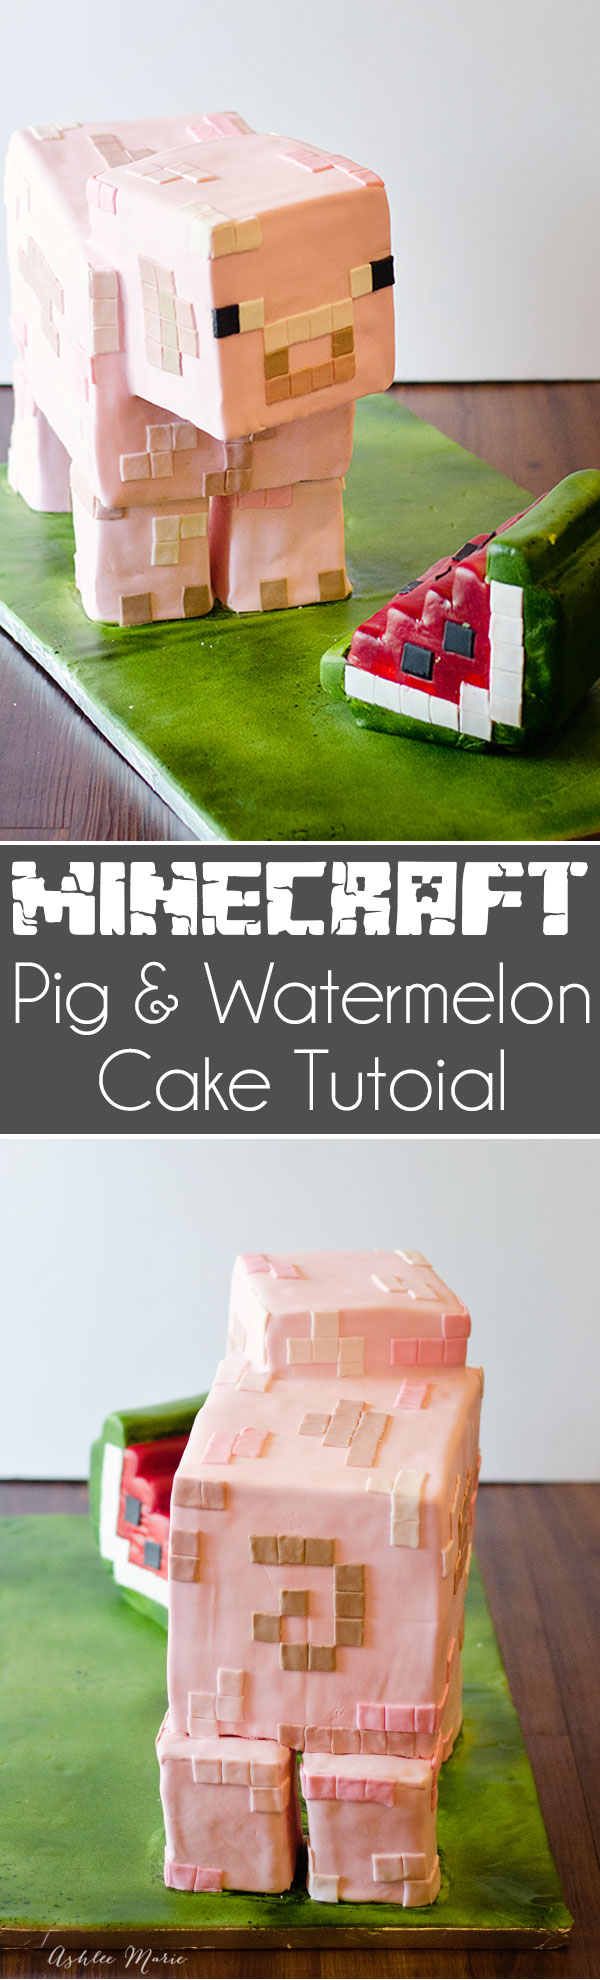 a full tutorial for making your own minecraft pig cake, with tips on building the internal structure, carving the cake and decorating it